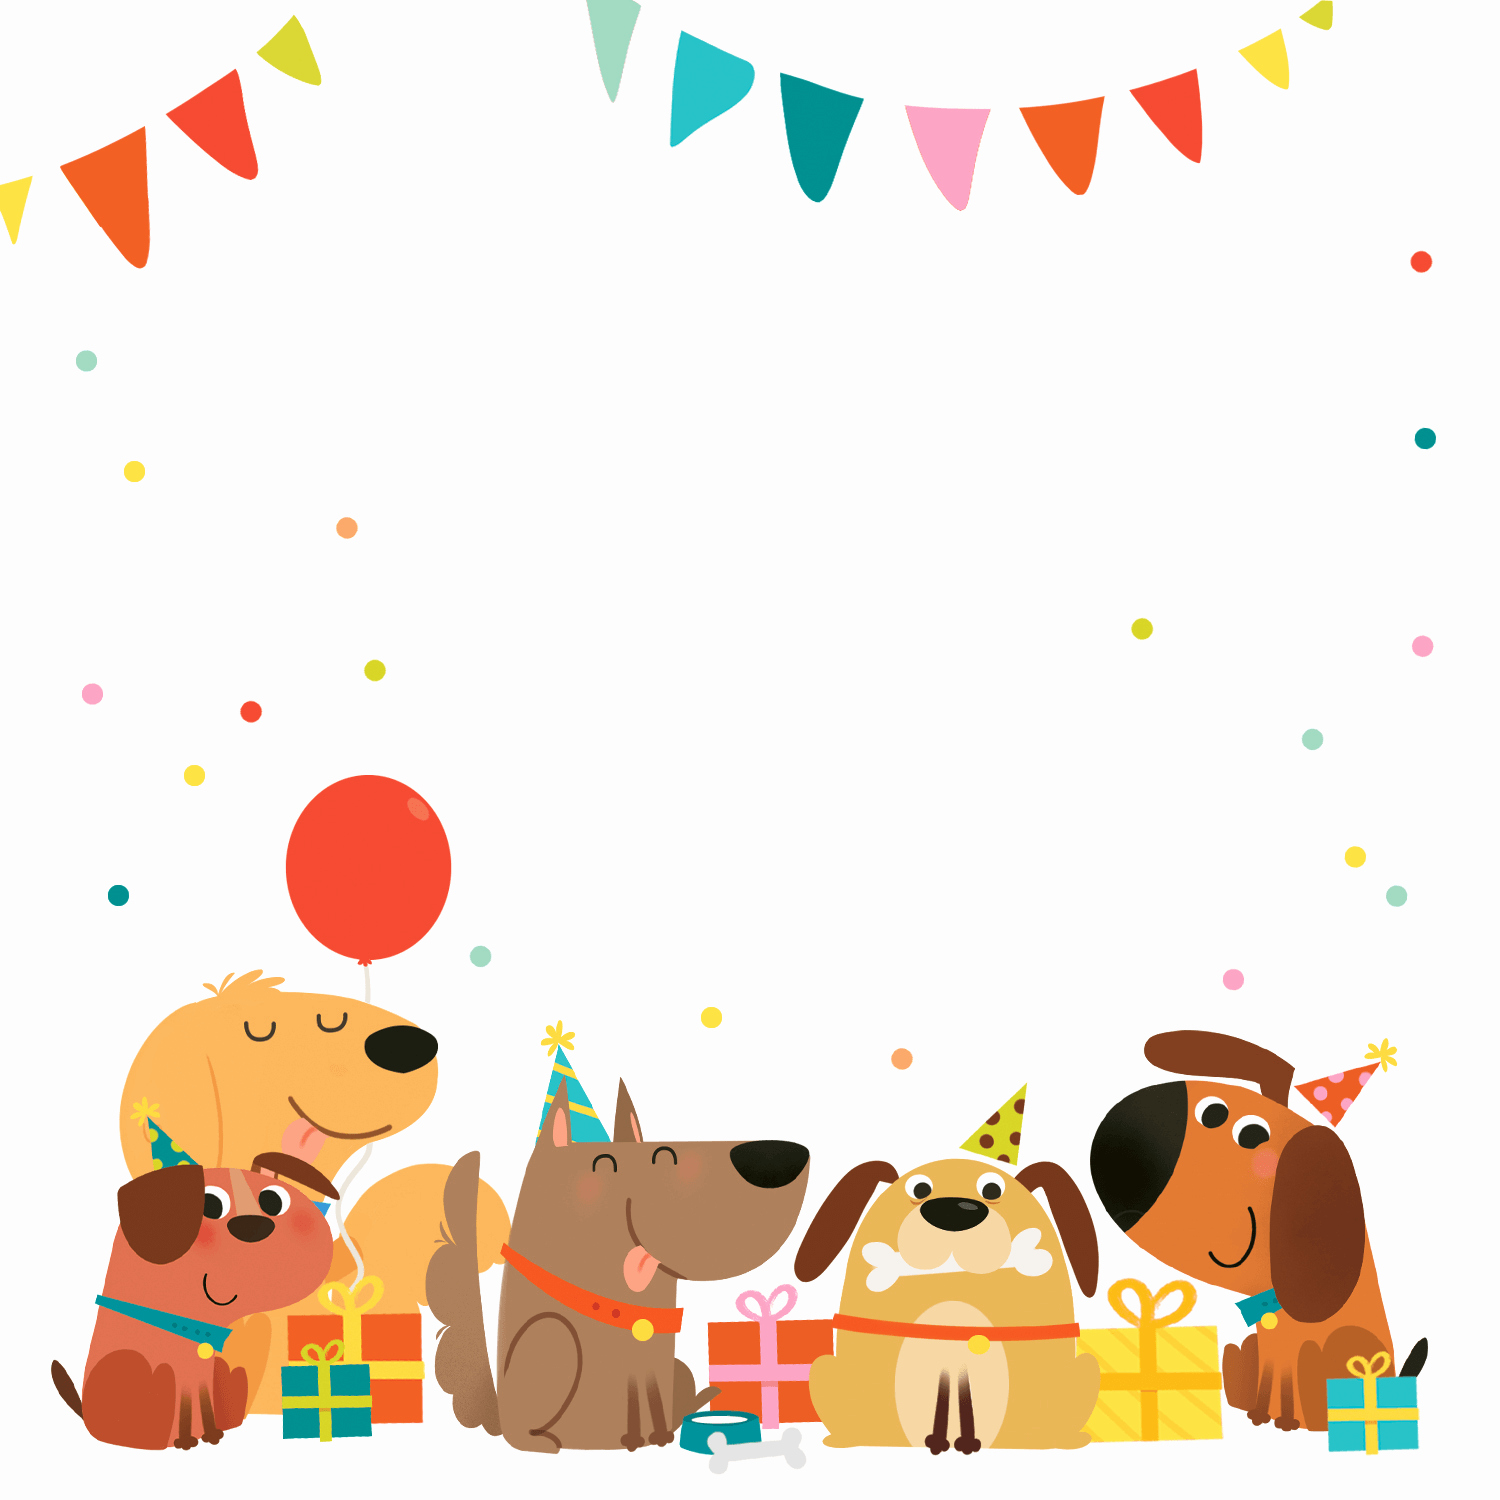 Free Printable Party Invitations Templates Beautiful Delighted Dogs Free Printable Birthday Invitation